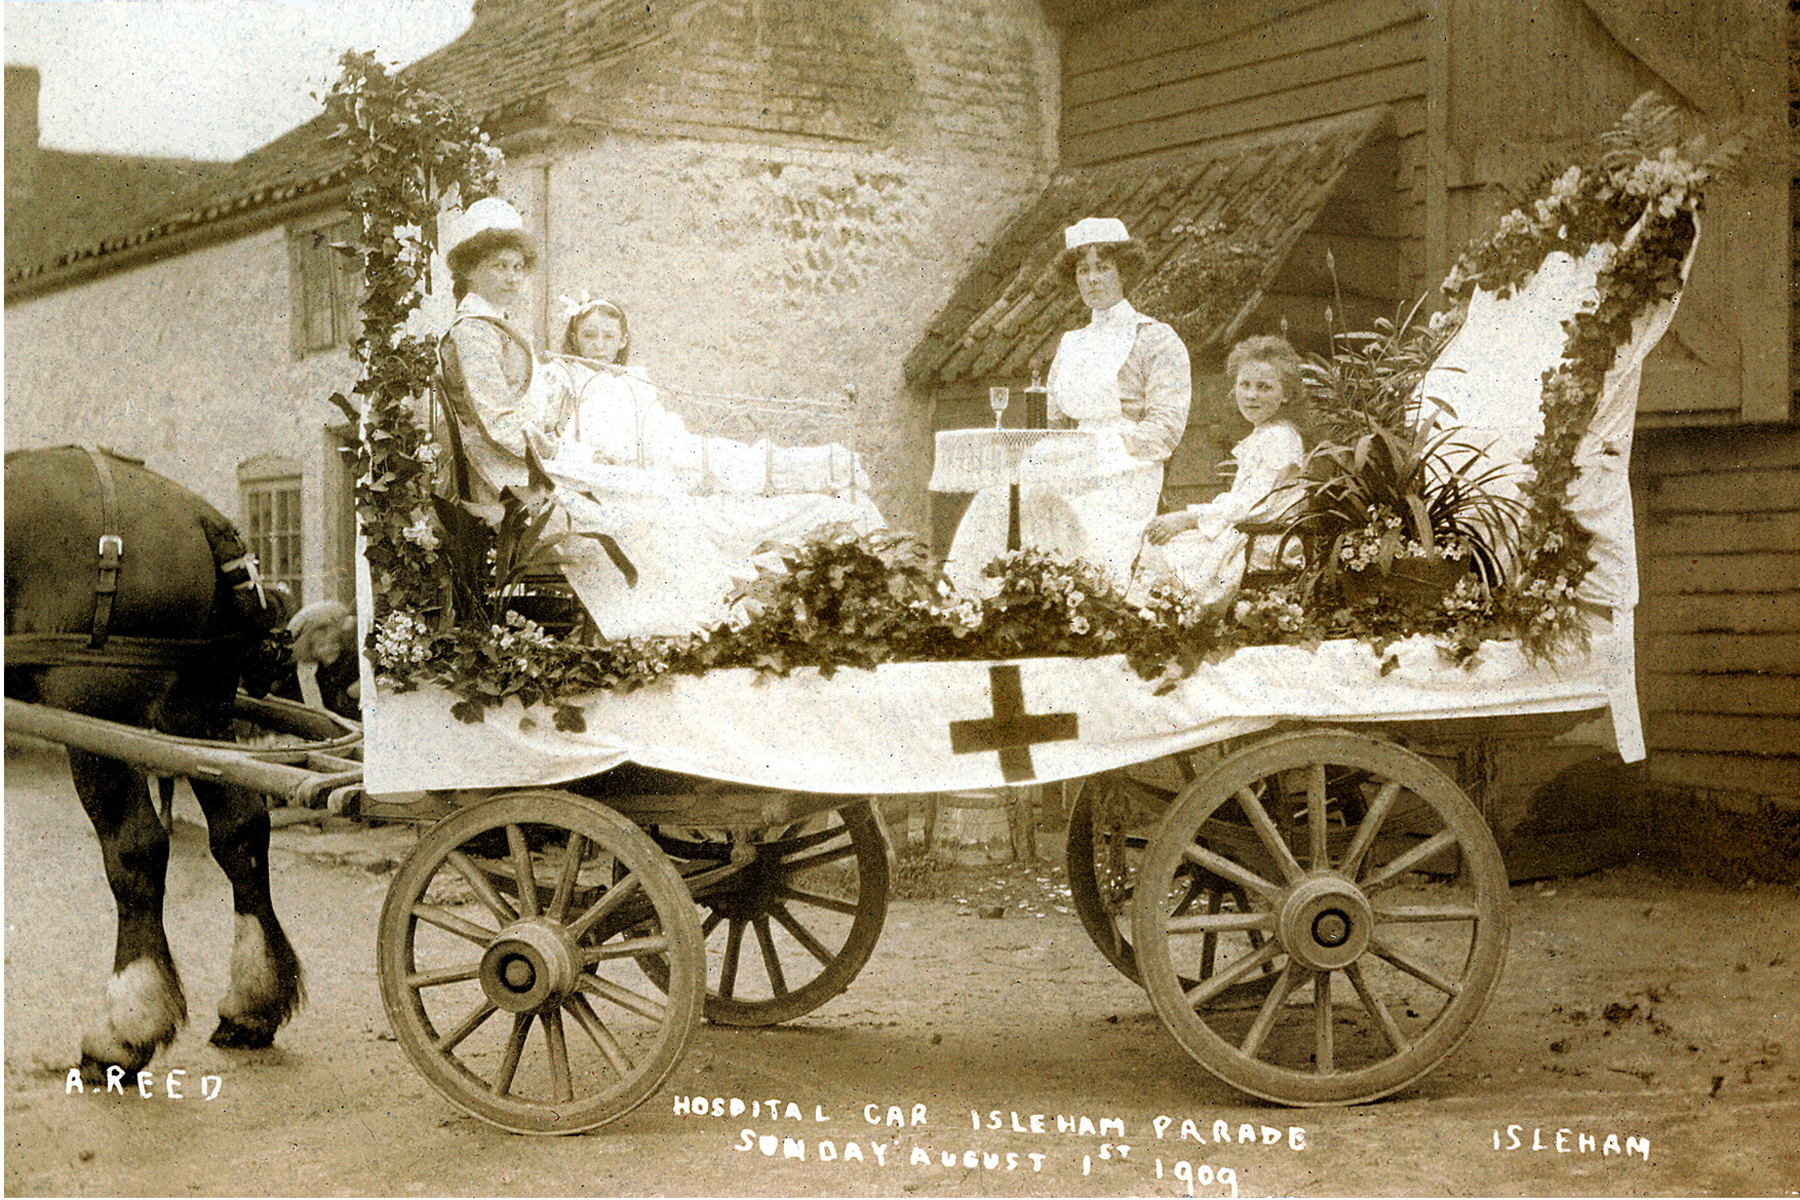 Clements059-copy.jpg - Hospital Cart Isleham Parade August 1st 1909